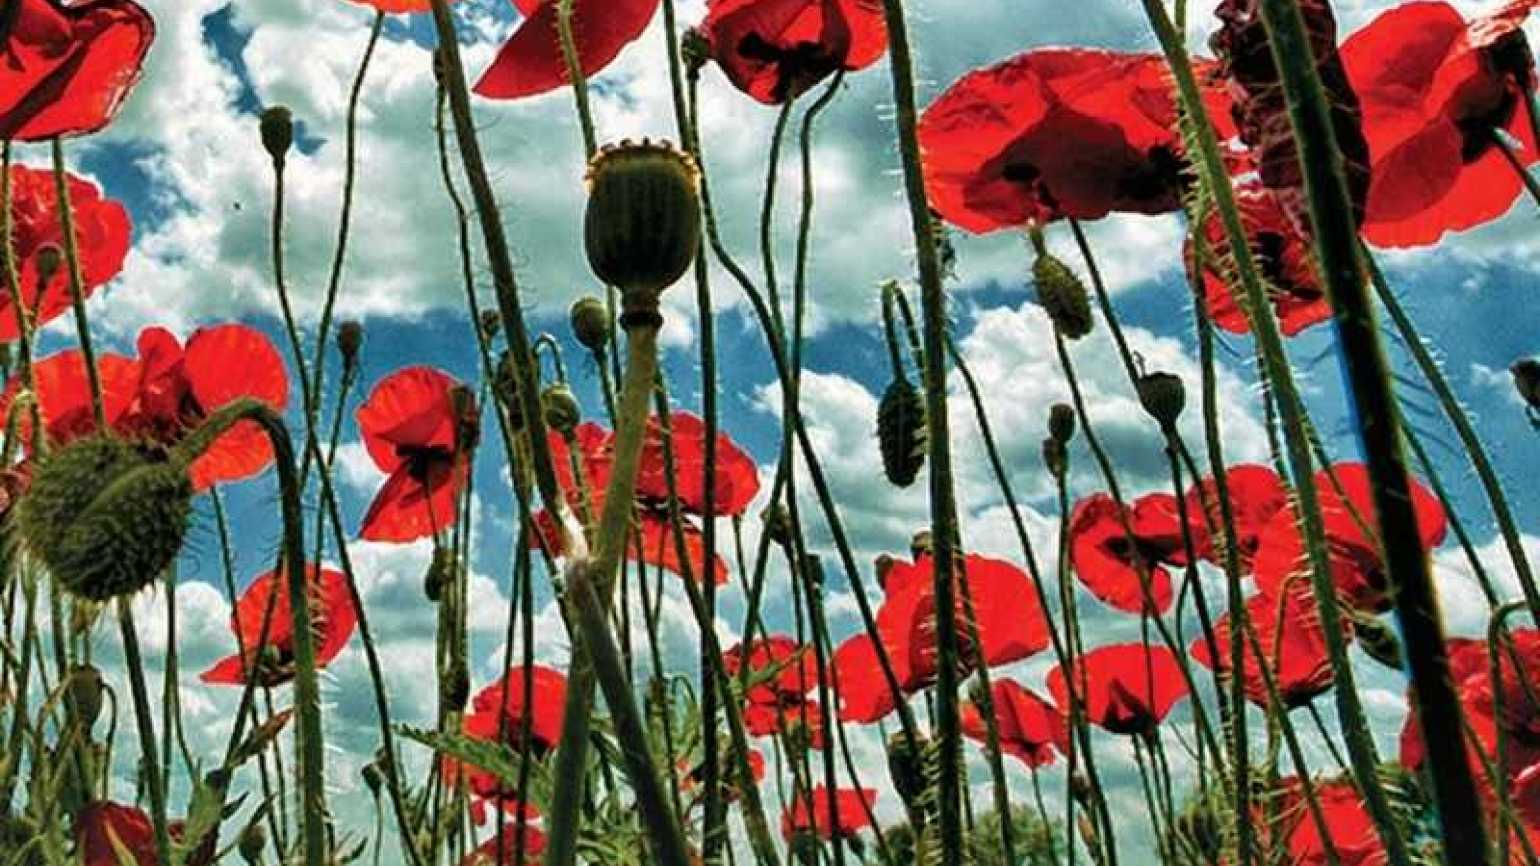 A field of red poppies with a blue sky and white clouds above them